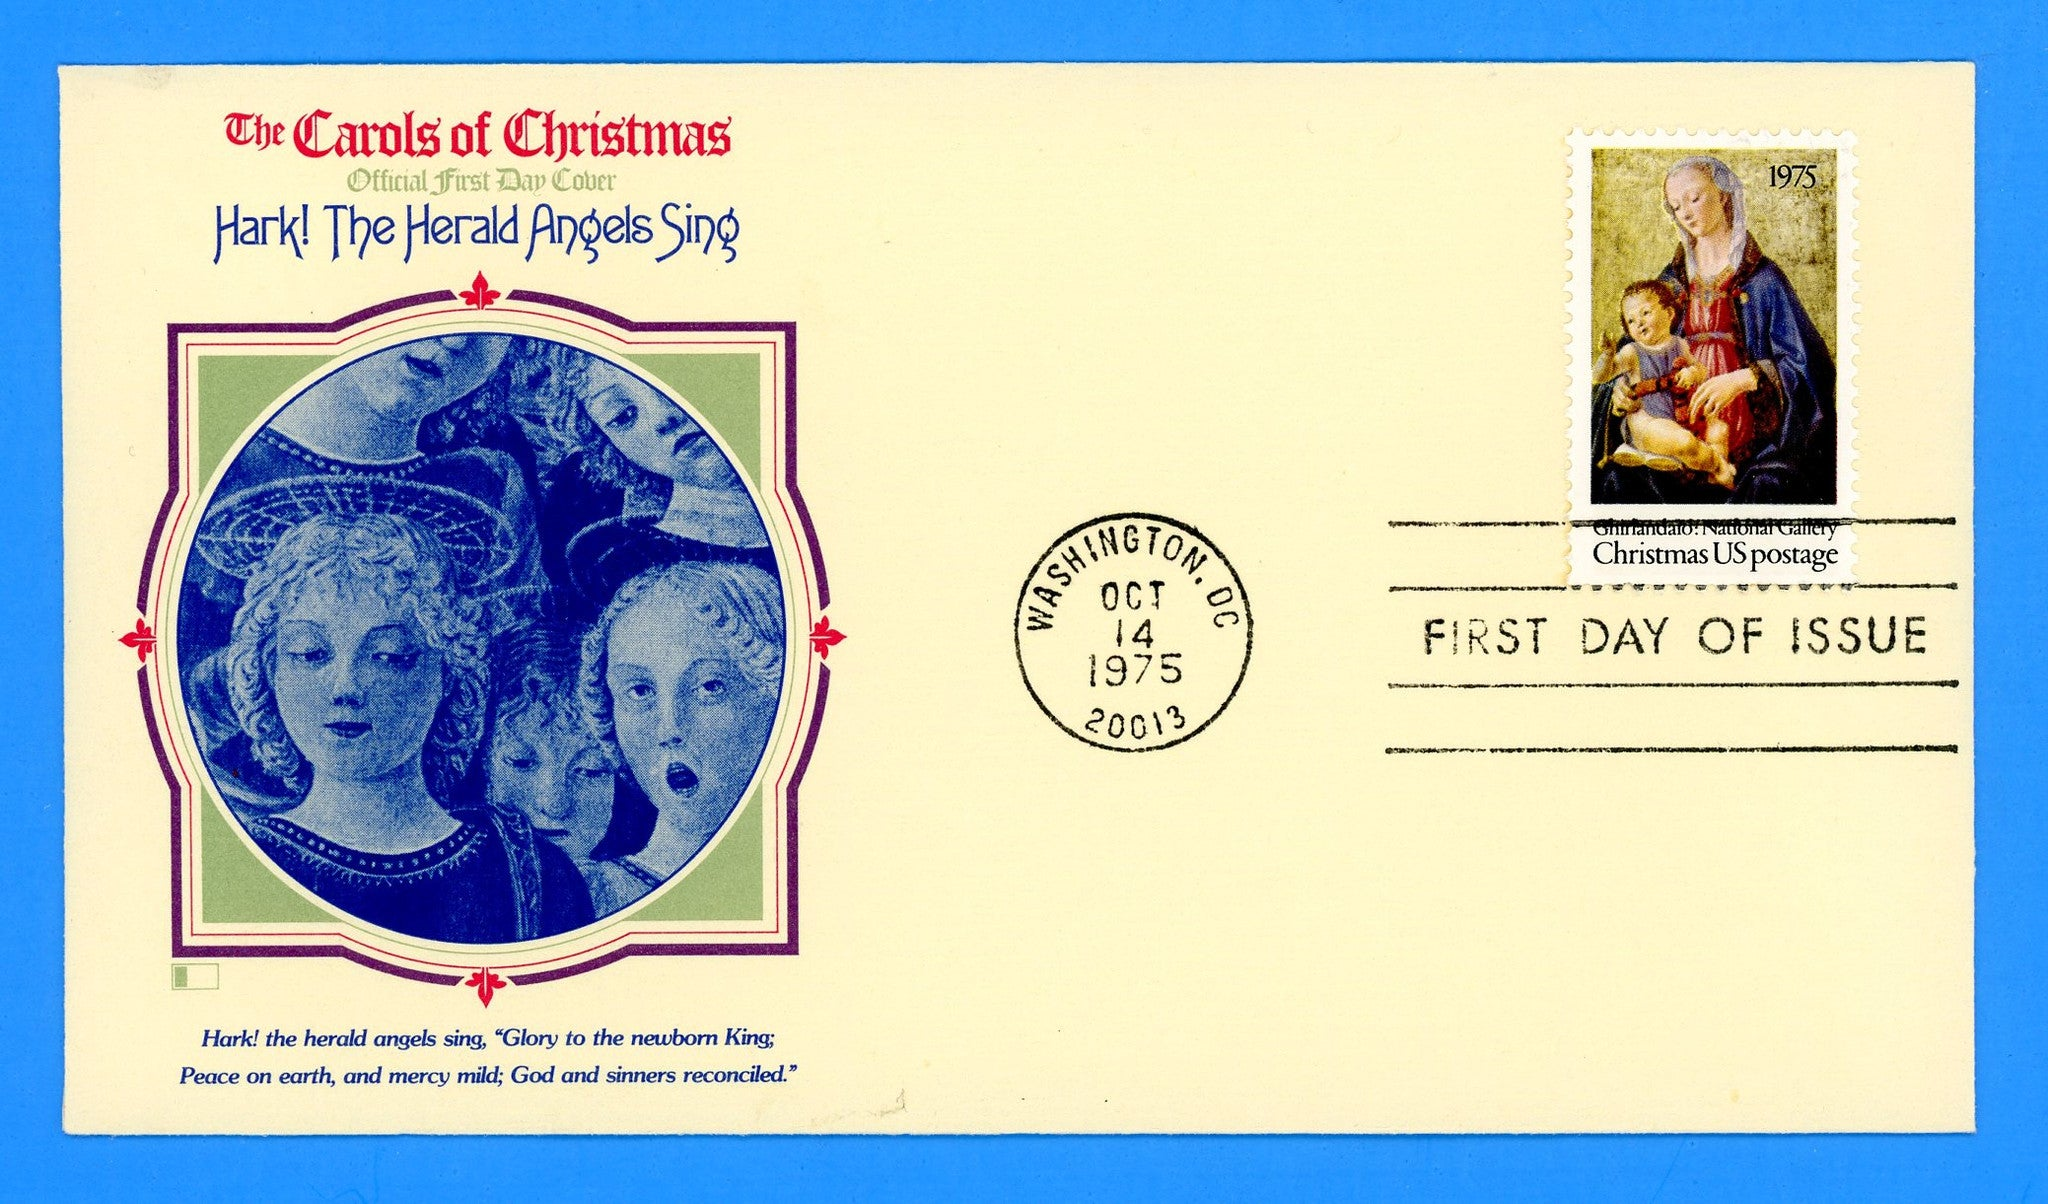 Christmas Madonna & Child 1975 First Day Cover by Fleetwood